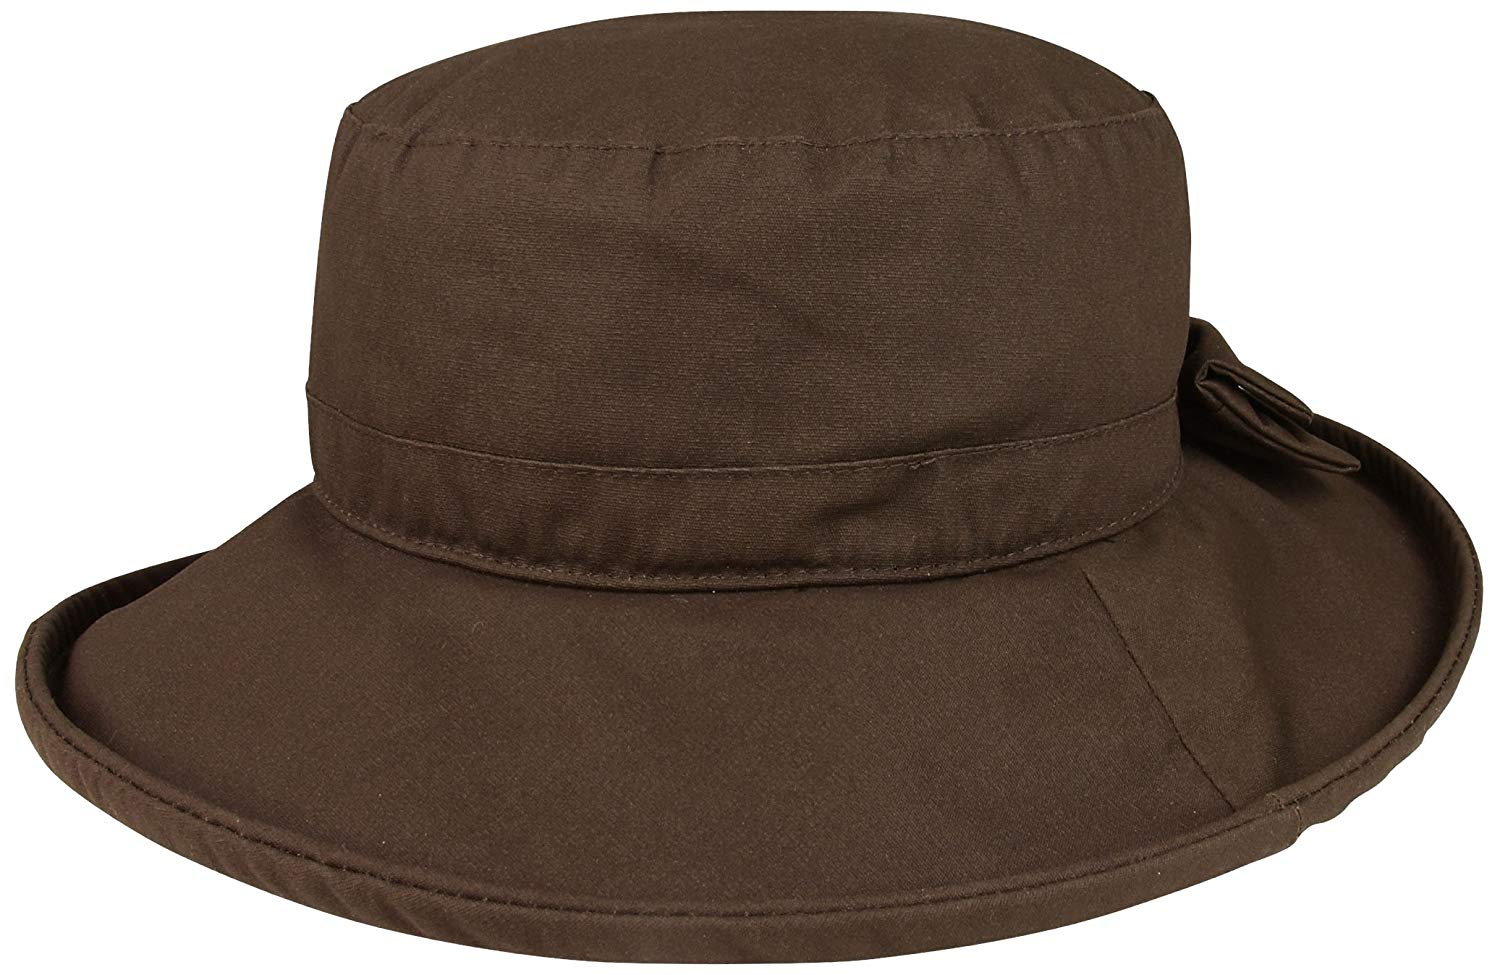 bae7de1e7ad505 Get Quotations · Juniper Women's Waxed Cotton Canvas Wide Brim Bucket Hat